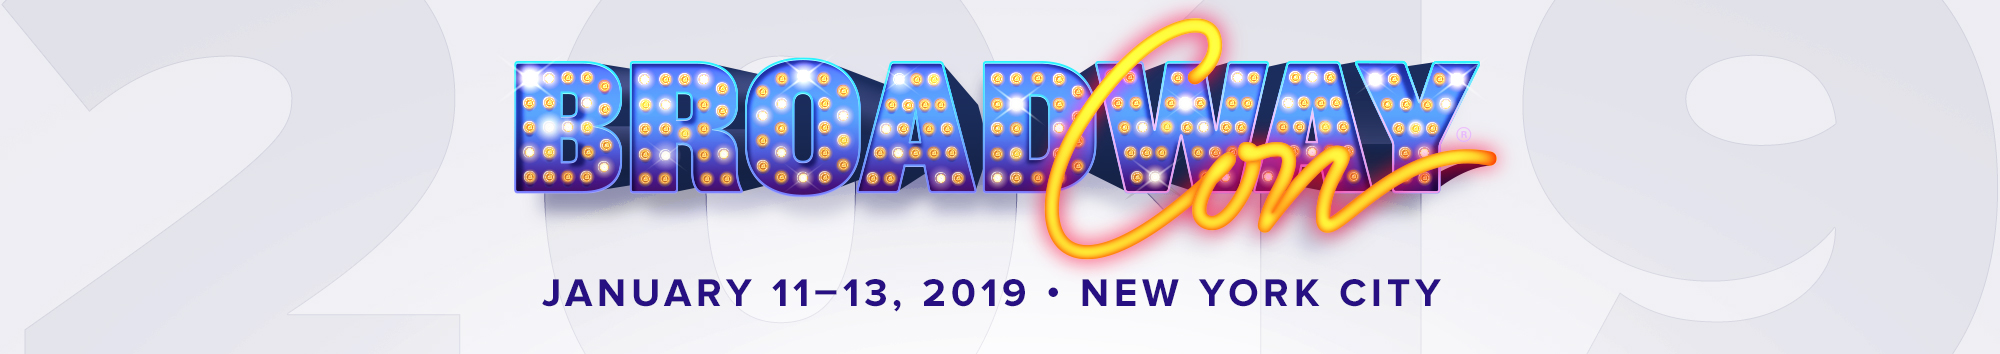 Tickets for BroadwayCon 2019 in New York from ShowClix